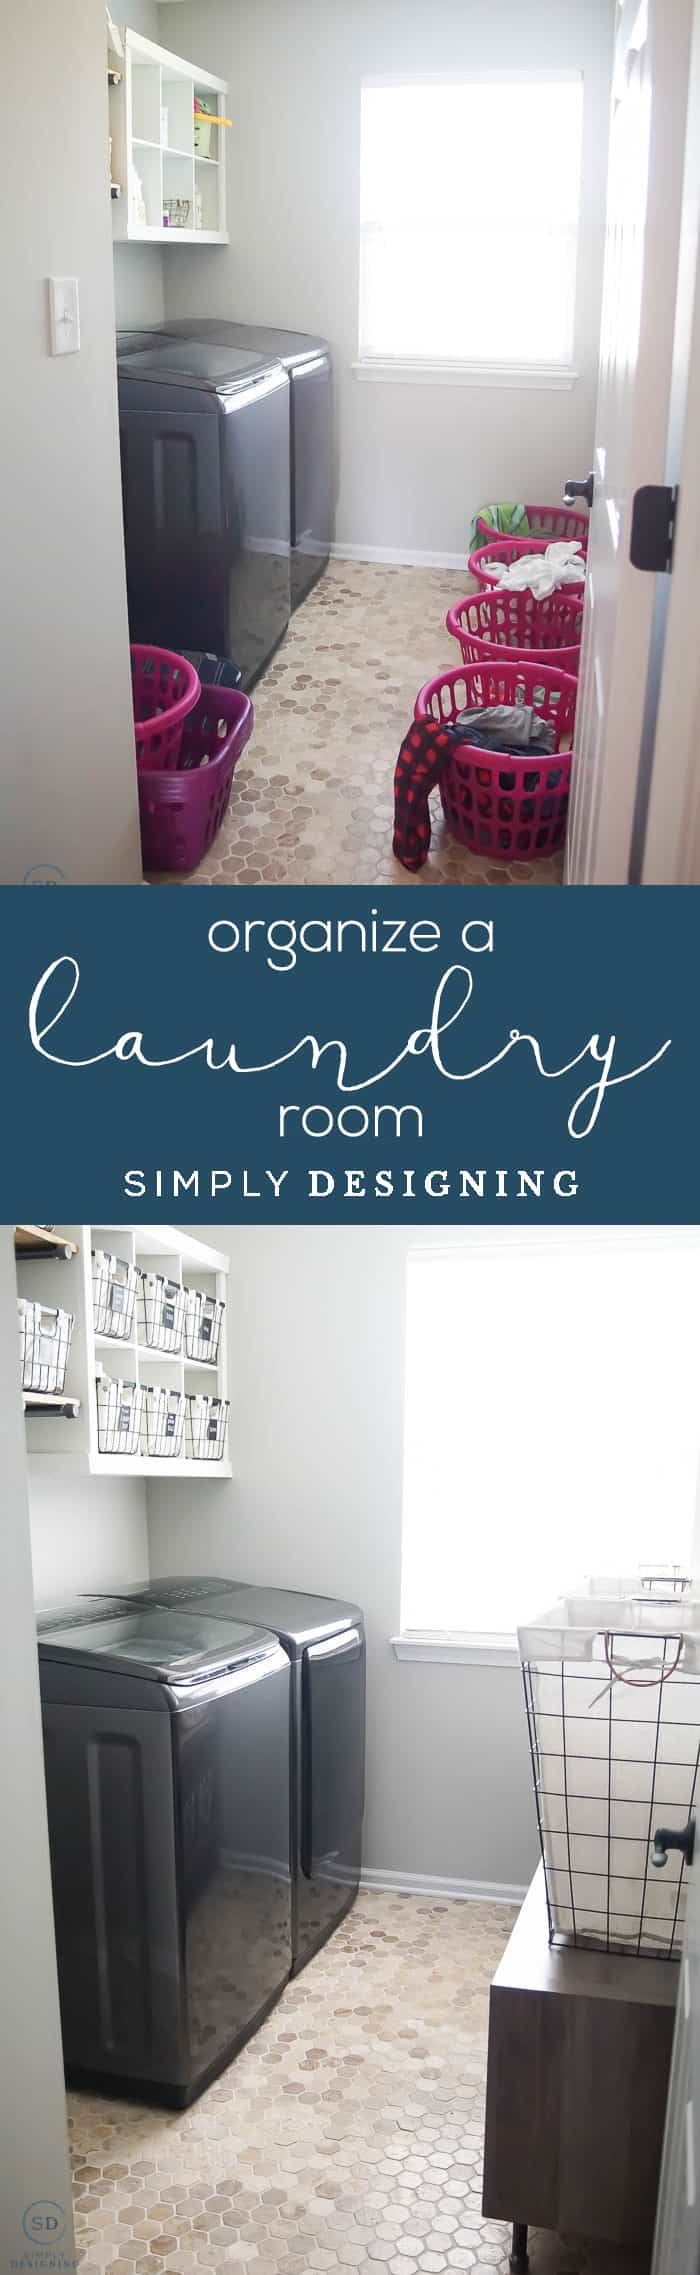 how to organize a laundry room a Laundry Room